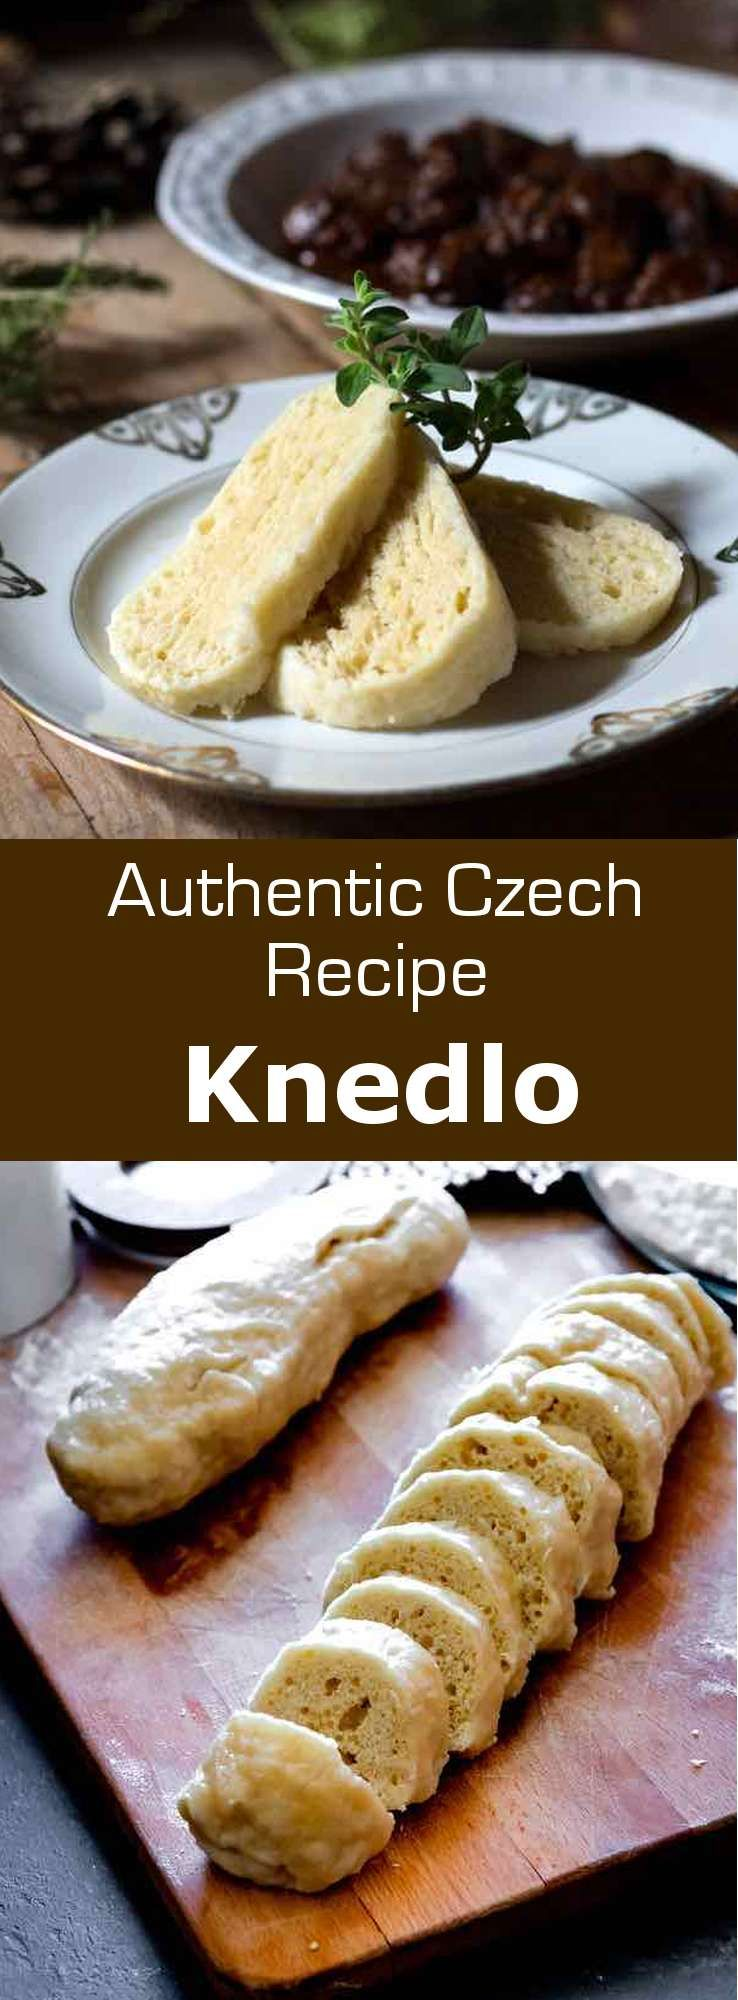 Knedliky are simple boiled dumplings from the Czech Republic, that are served on the side of many traditional dishes, including goulash. #CzechRepublic #CzechCuisine #CzechRecipe #CzechBread #CzechDumpling #WorldCuisine #196flavors #czechrecipes